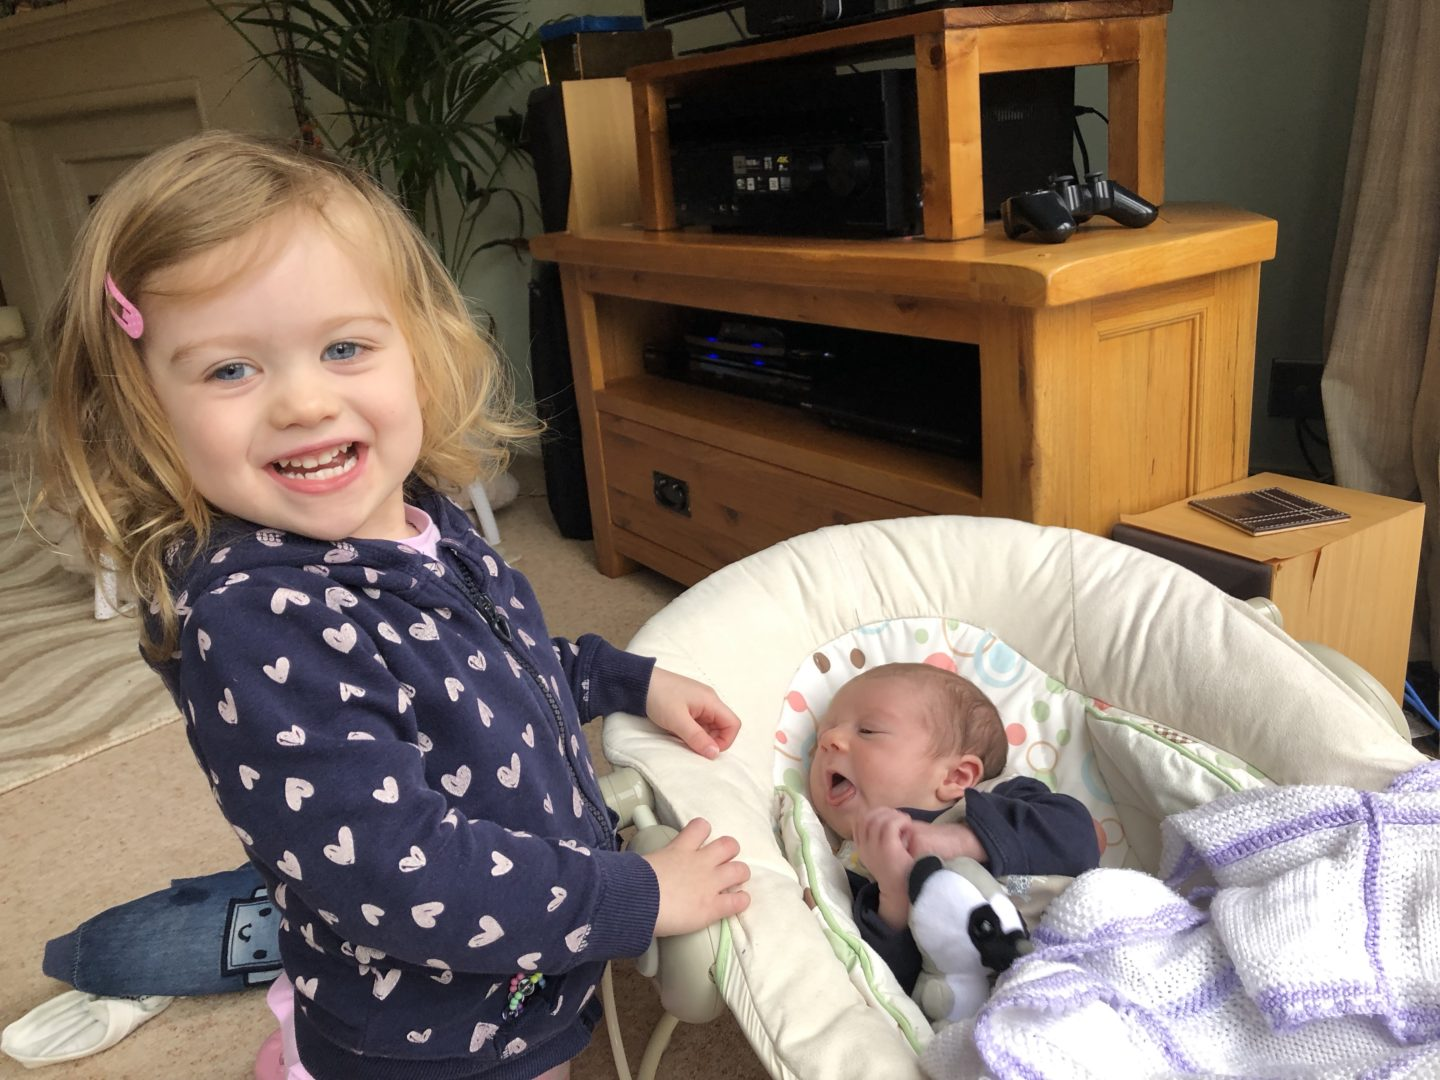 Baby Number 3 – the Most Challenging!